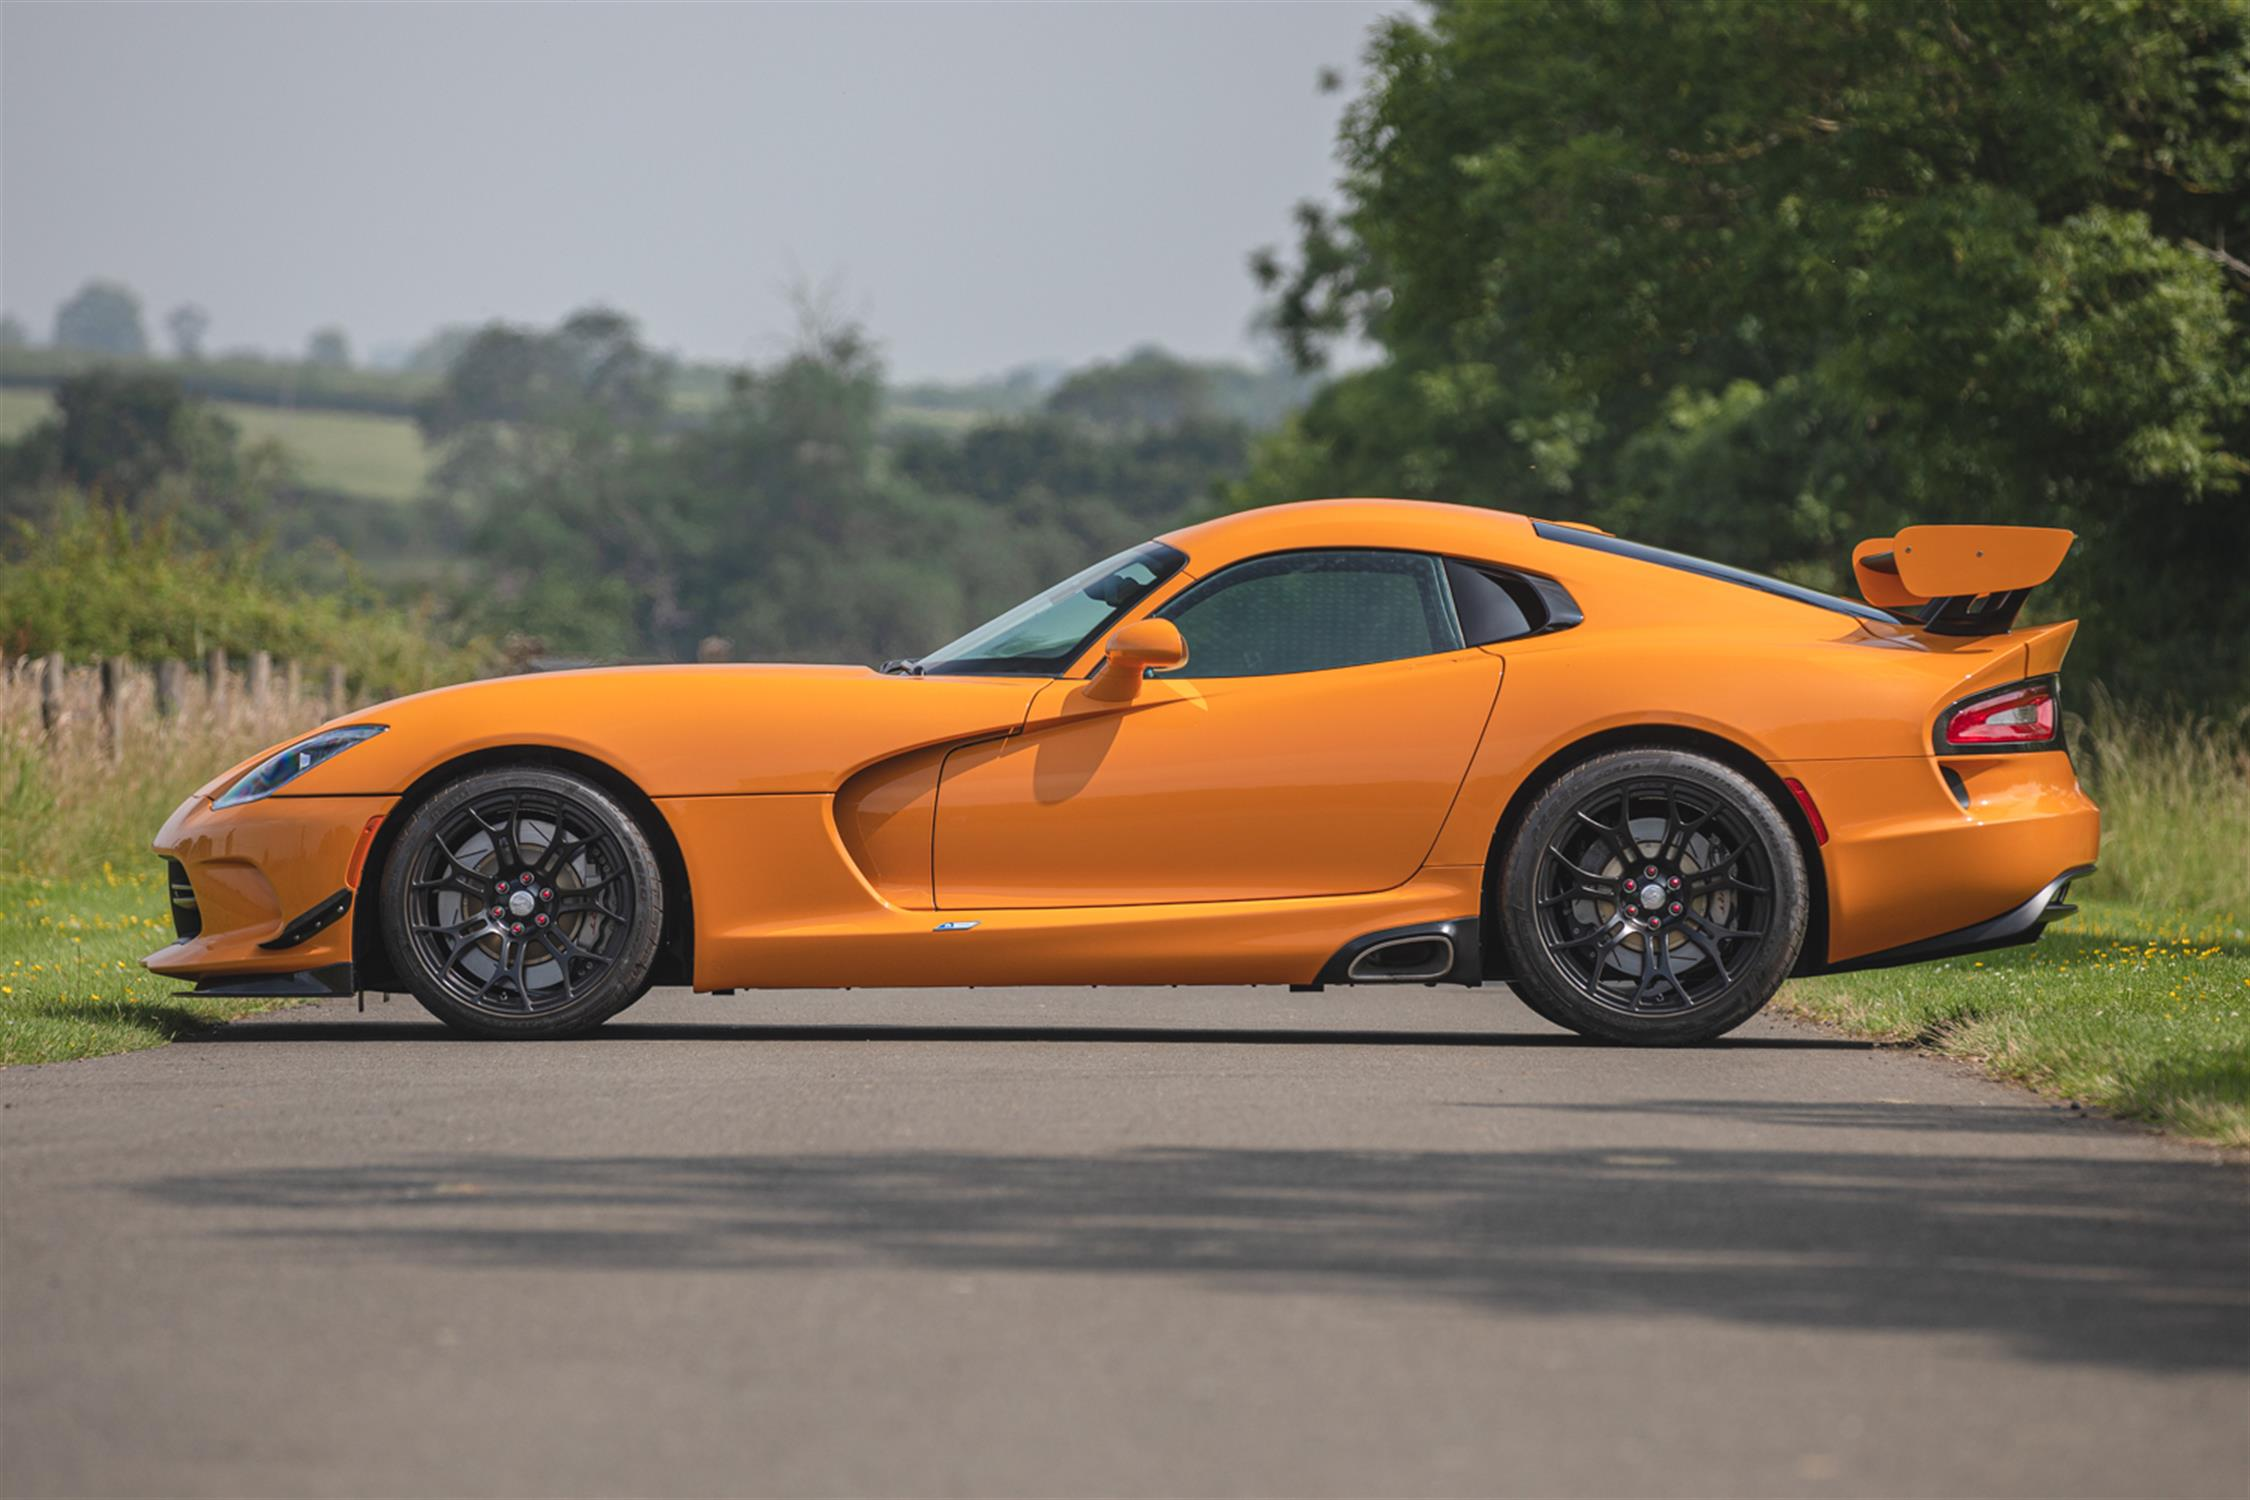 2015 Dodge Viper TA 2.0 6-Speed Coupe - Image 7 of 10